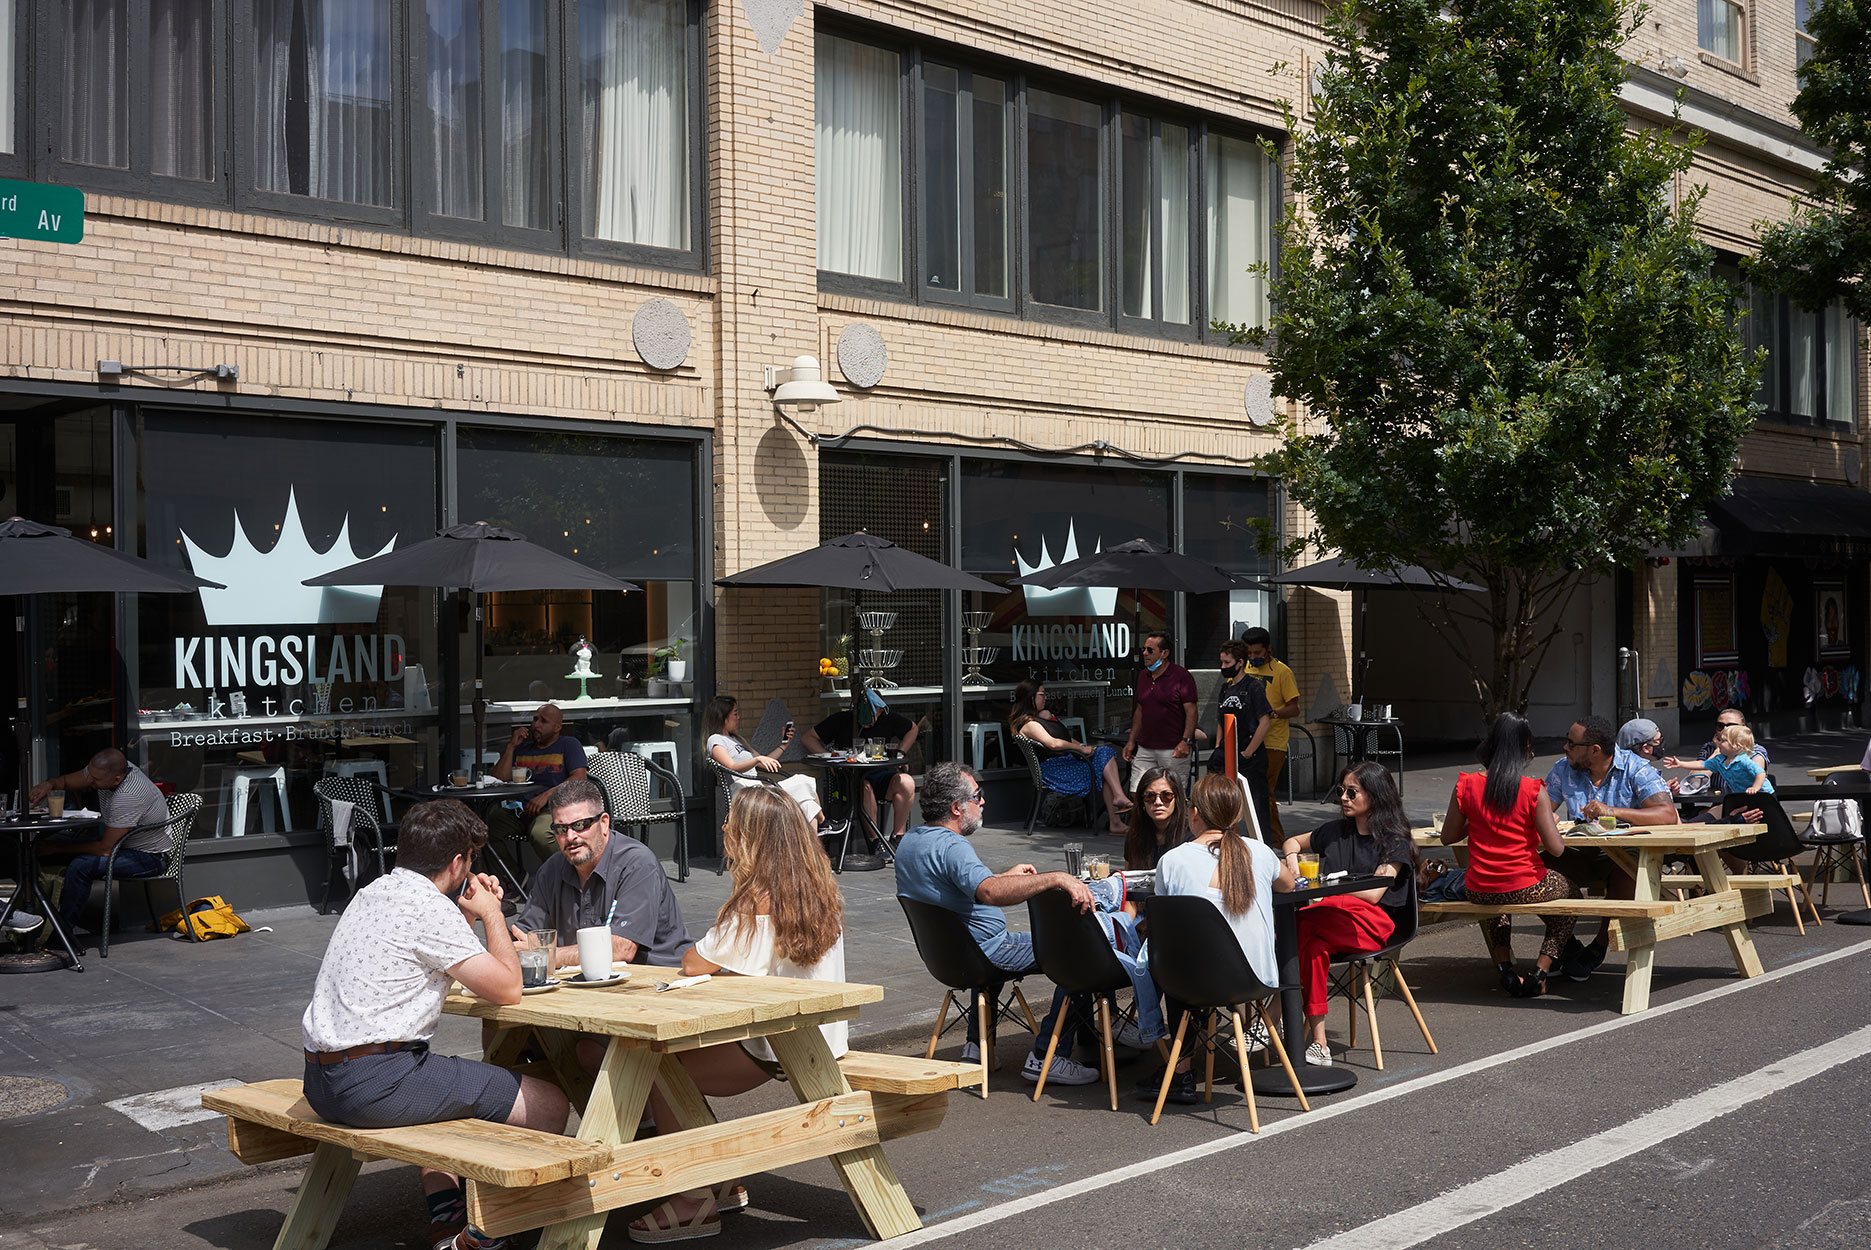 On-street Outdoor Dining